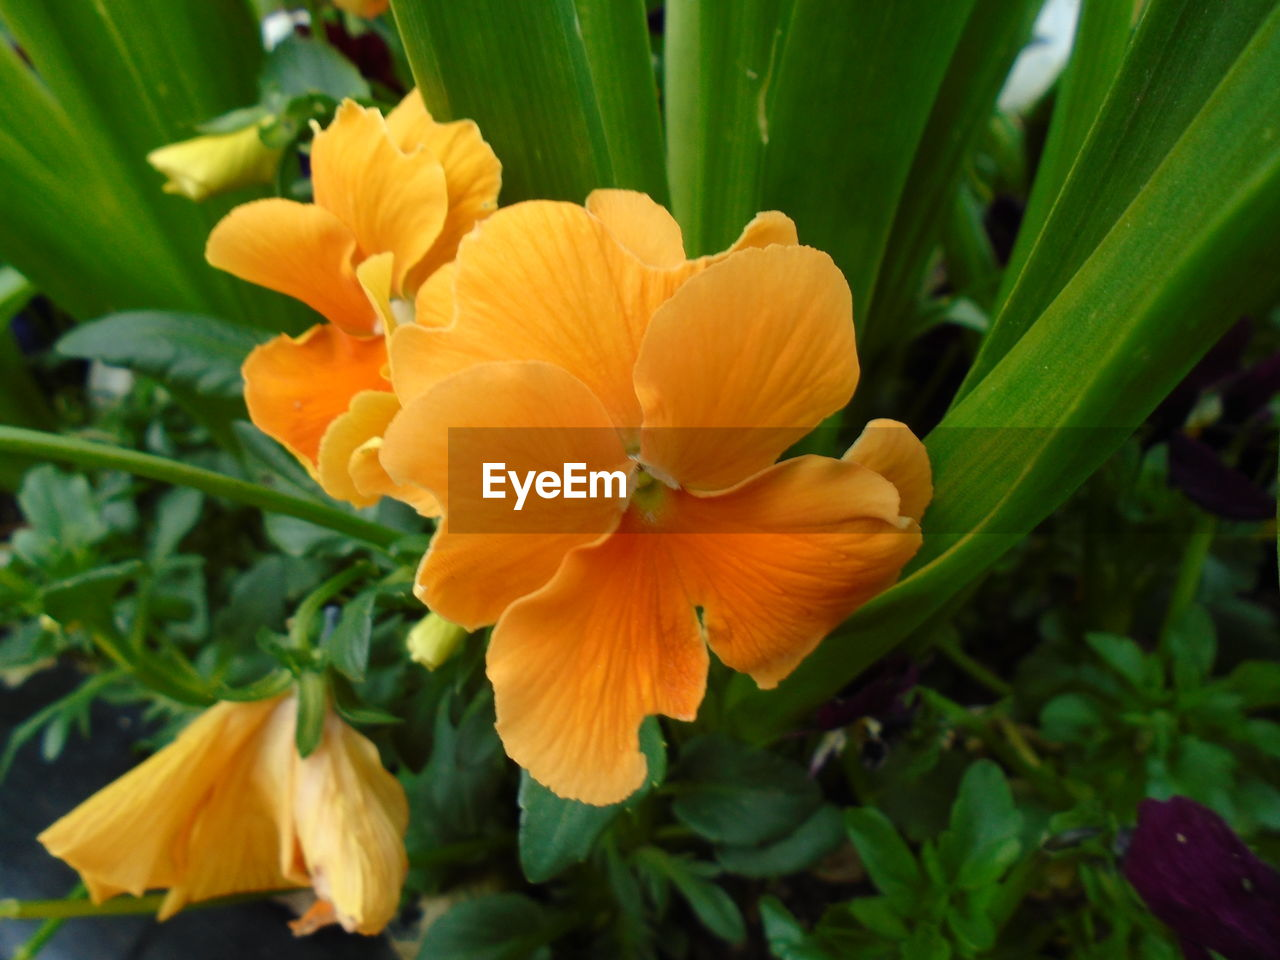 flower, petal, growth, beauty in nature, nature, fragility, flower head, freshness, plant, blooming, yellow, outdoors, no people, green color, focus on foreground, day, close-up, day lily